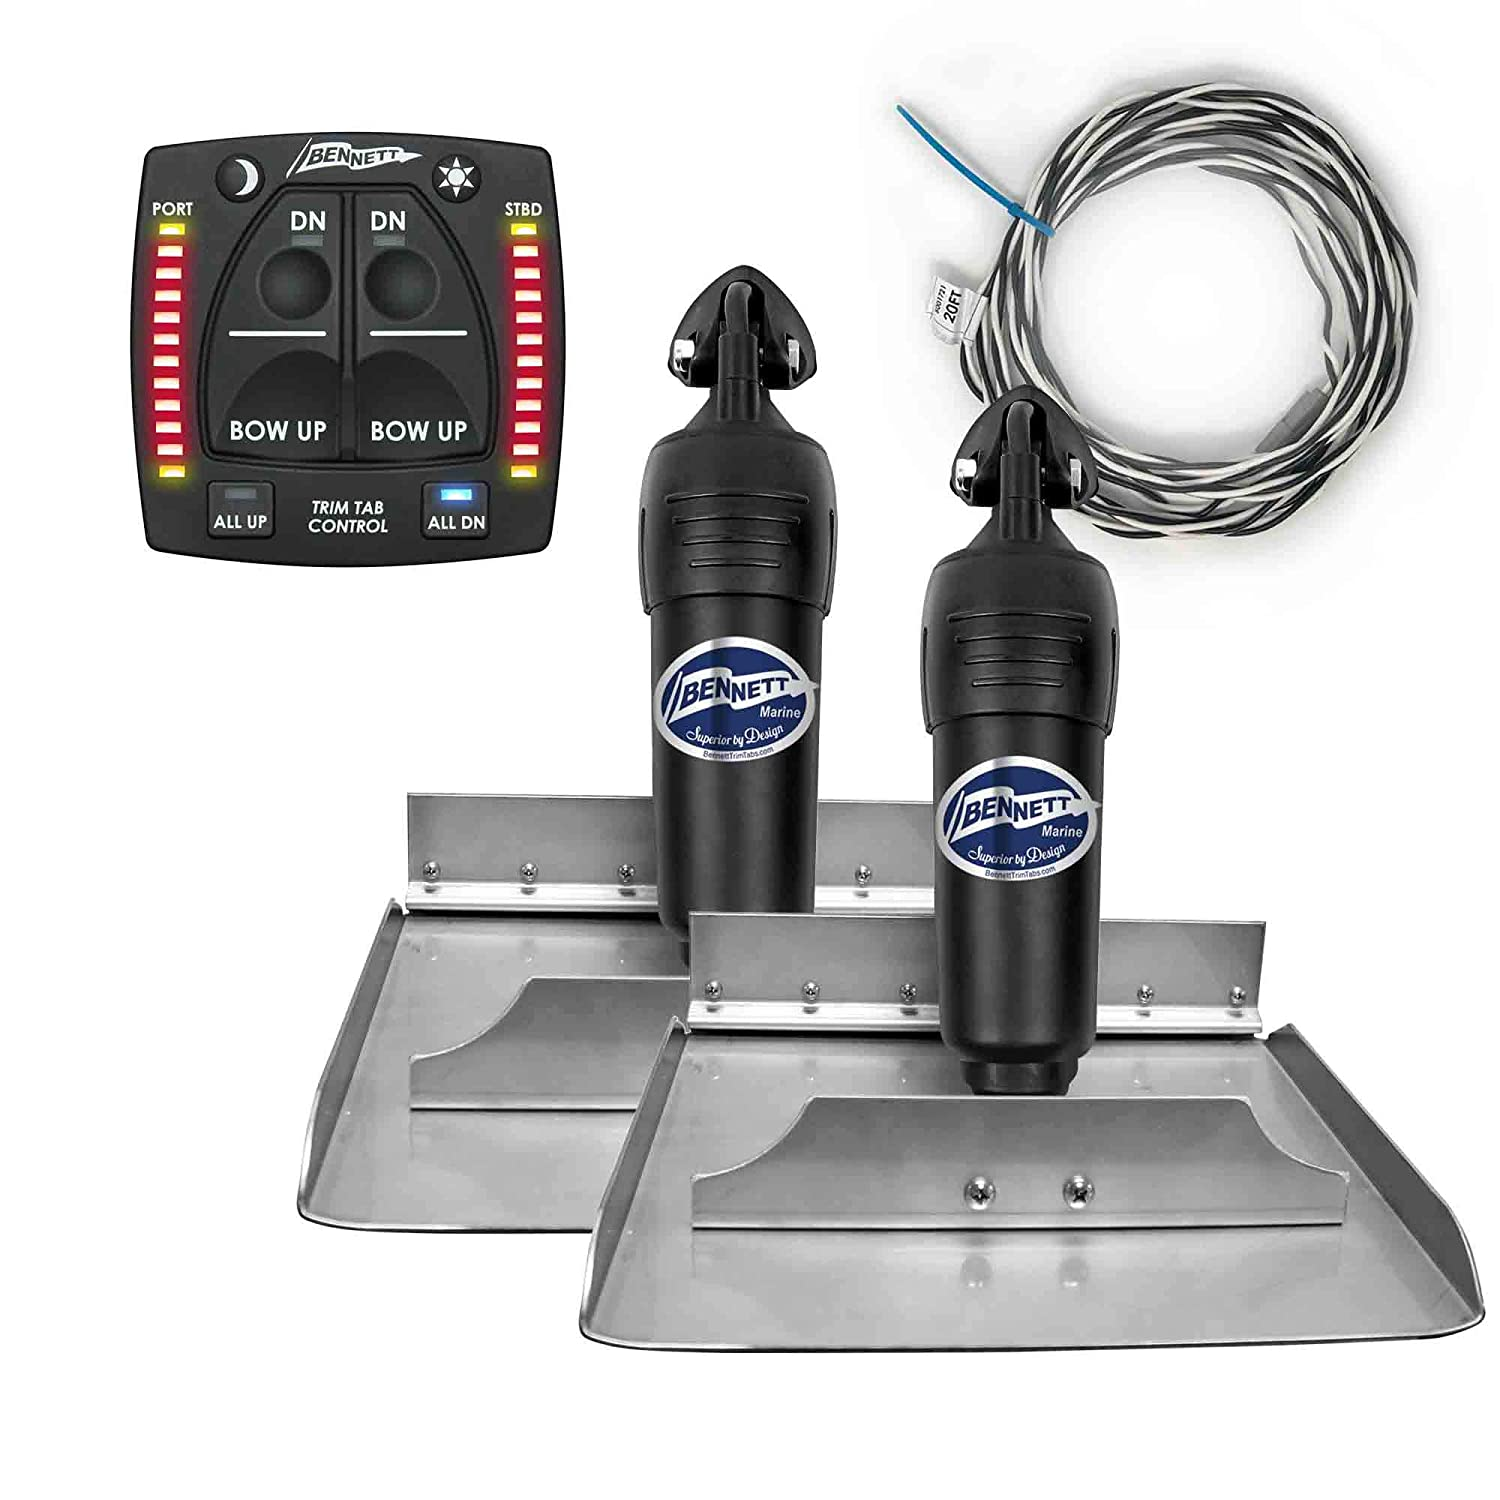 Bennett Complete Kit Bolt Electric Trim Tab (BOLT1212) with New 2020 Integrated Helm Control (OBI9000E), 12 x 12 inches FO-4321